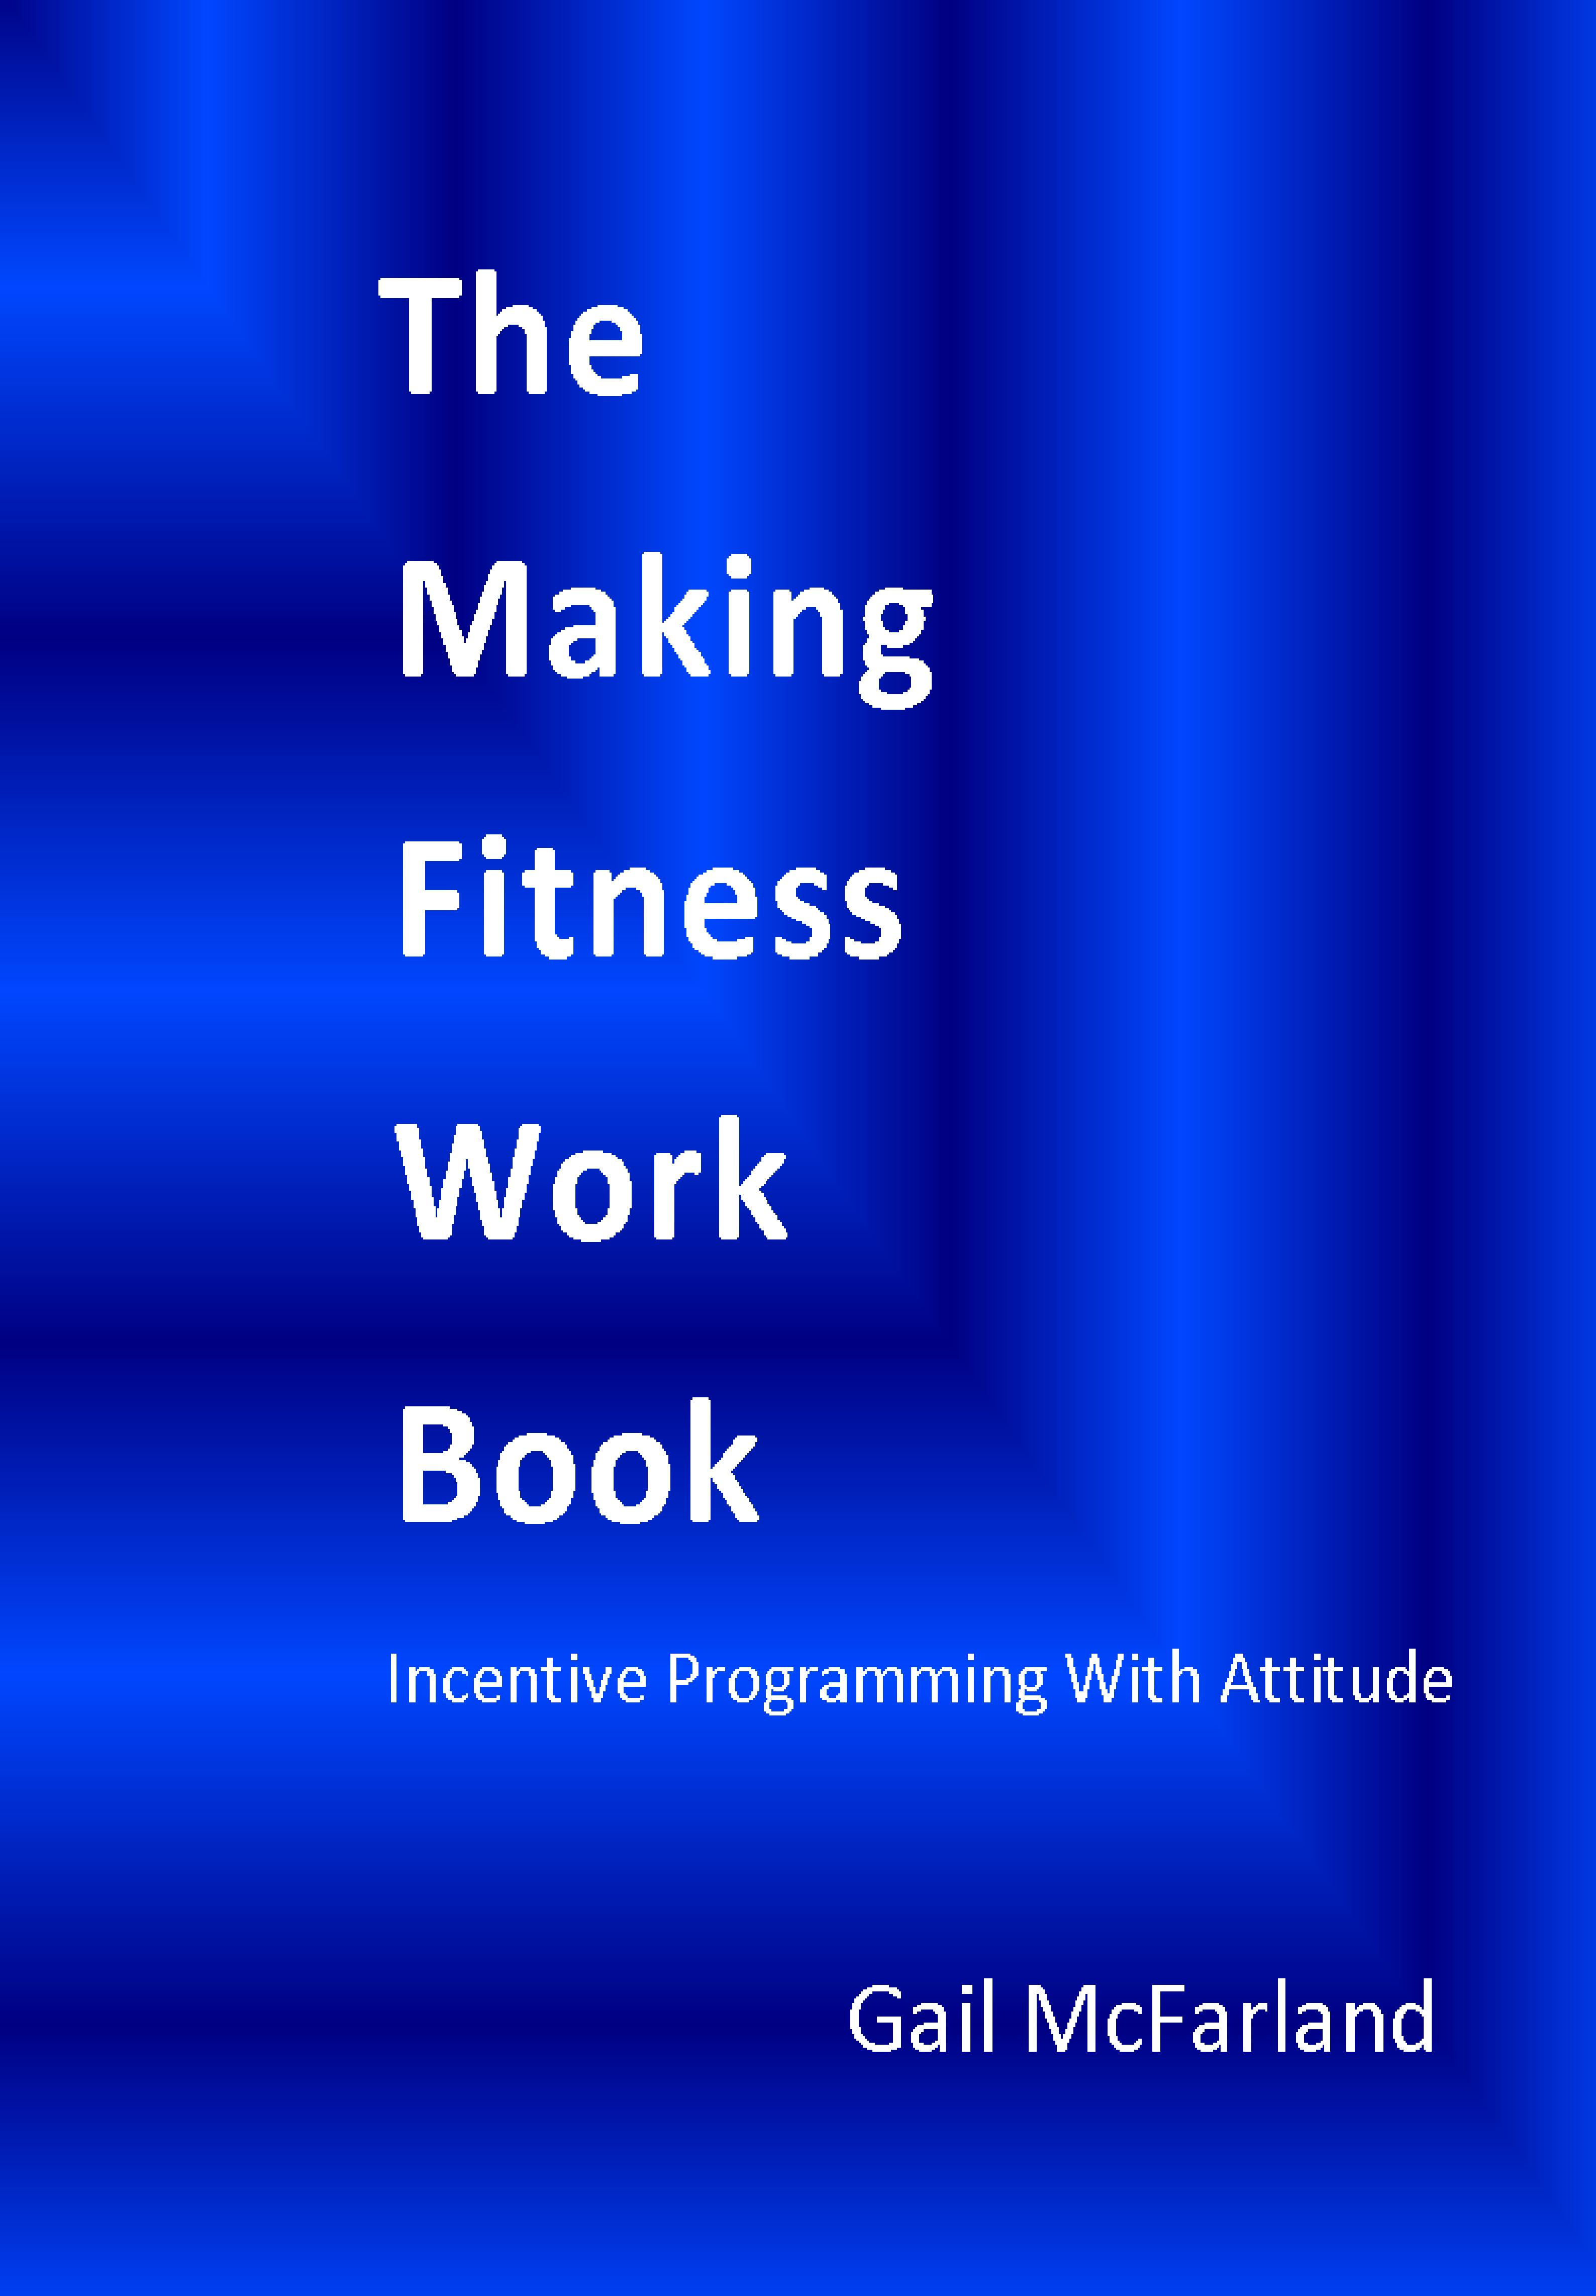 making_fitness_work_book_cover.jpg